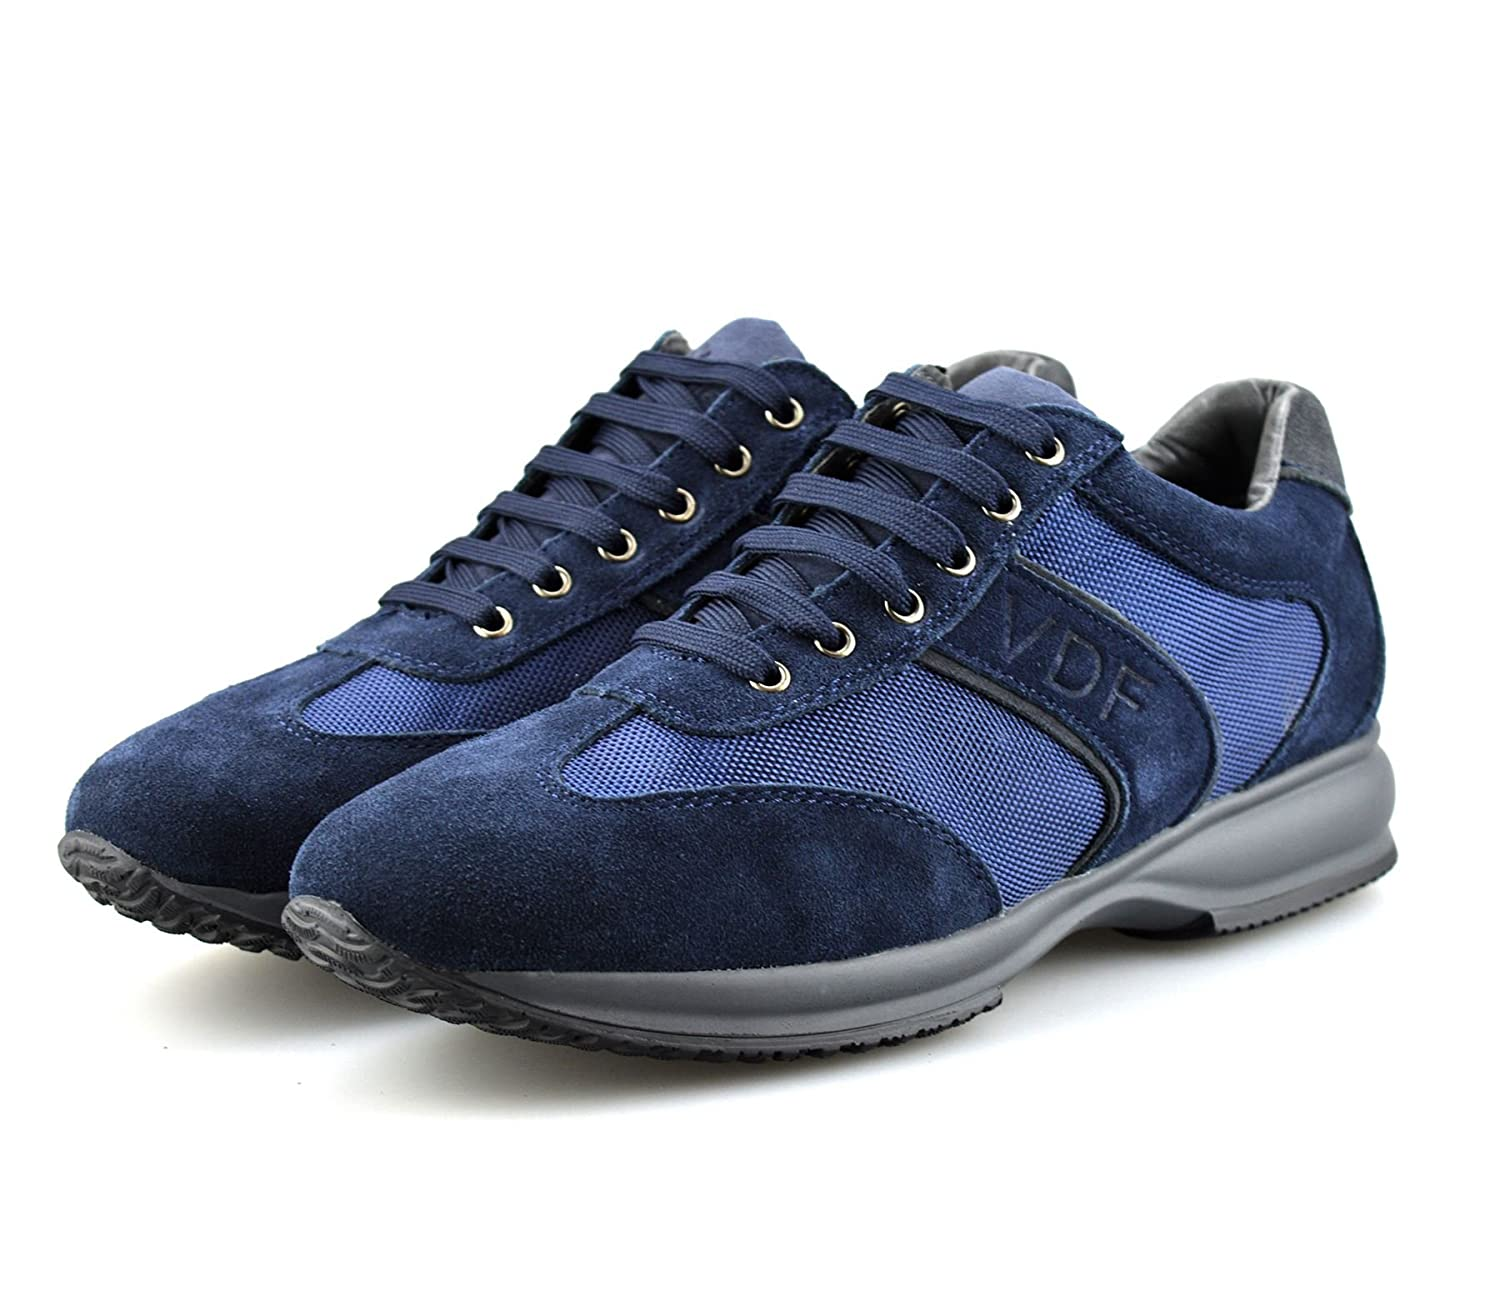 Mens Leather Suede Casual Running Gym Sports Shock Absorbing Trainers Shoes:  Amazon.co.uk: Shoes & Bags